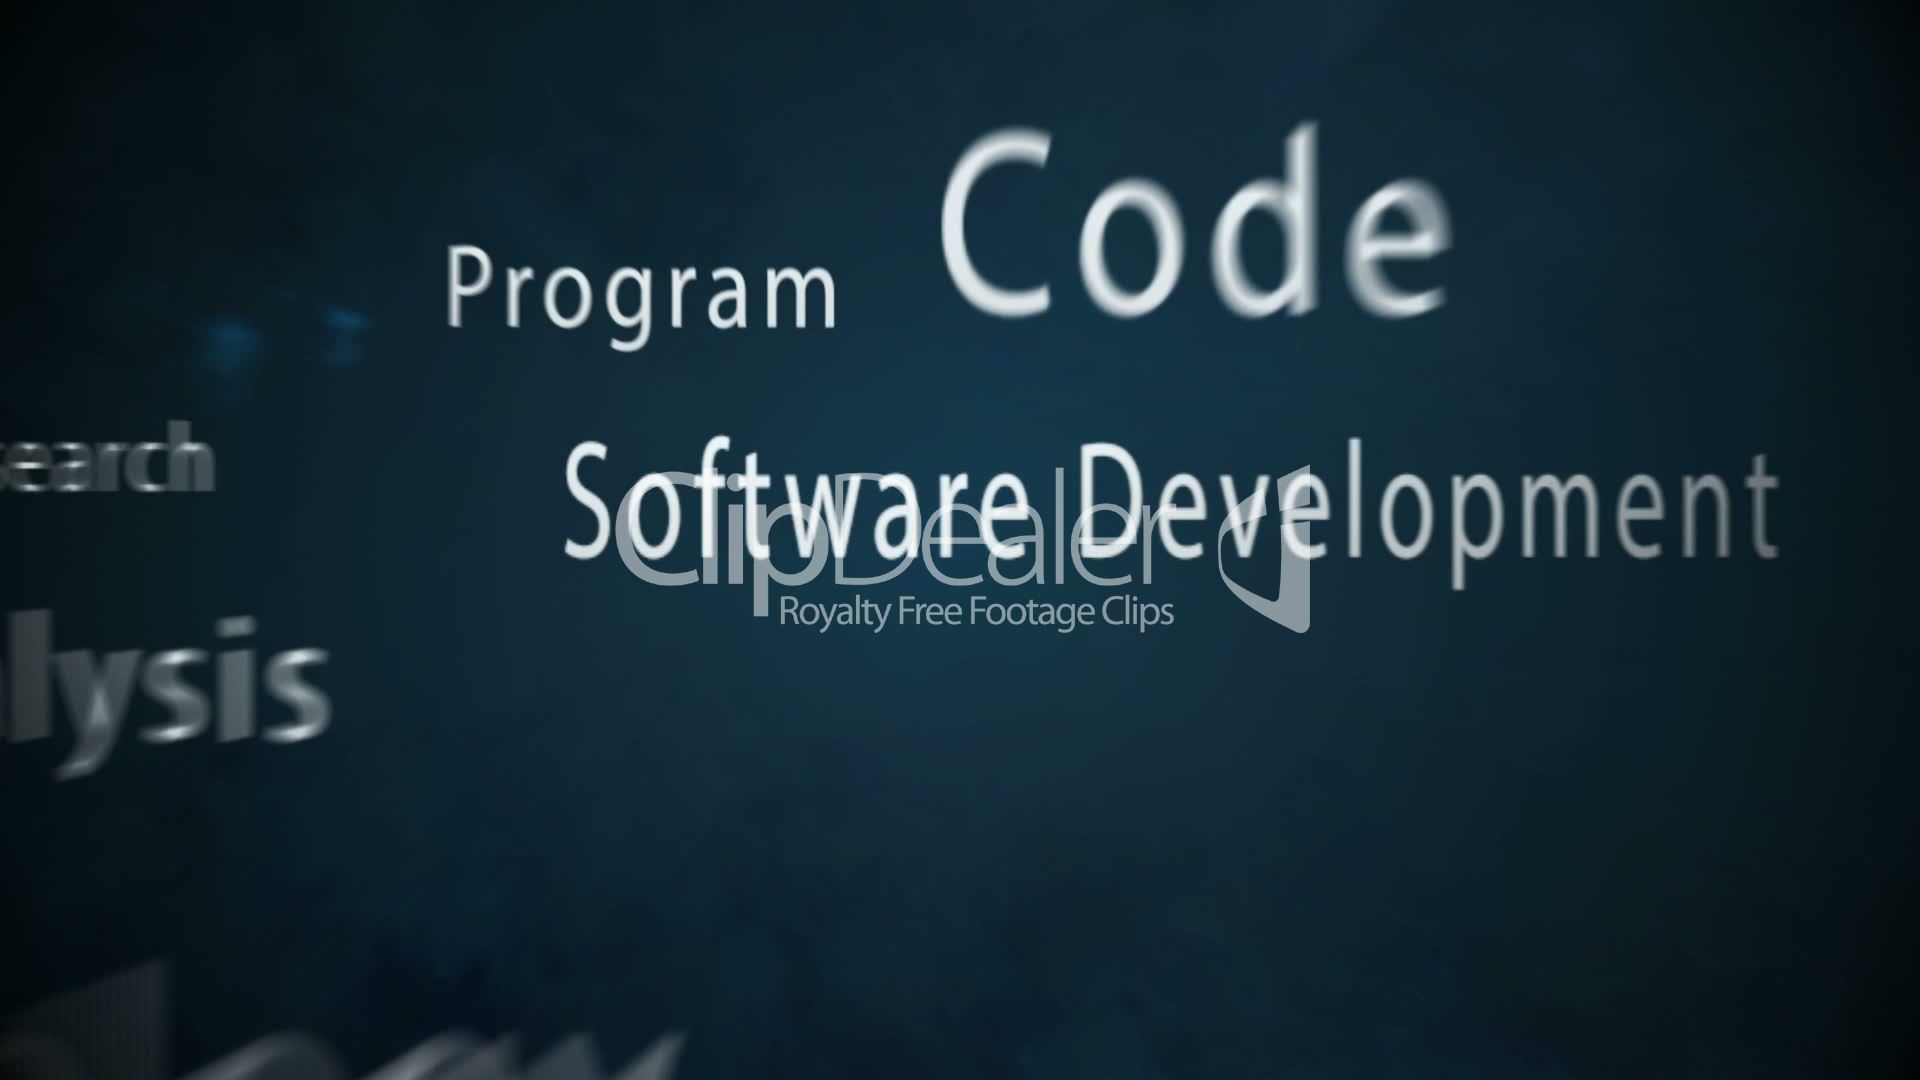 1920x1080 Software Developer Wallpaper